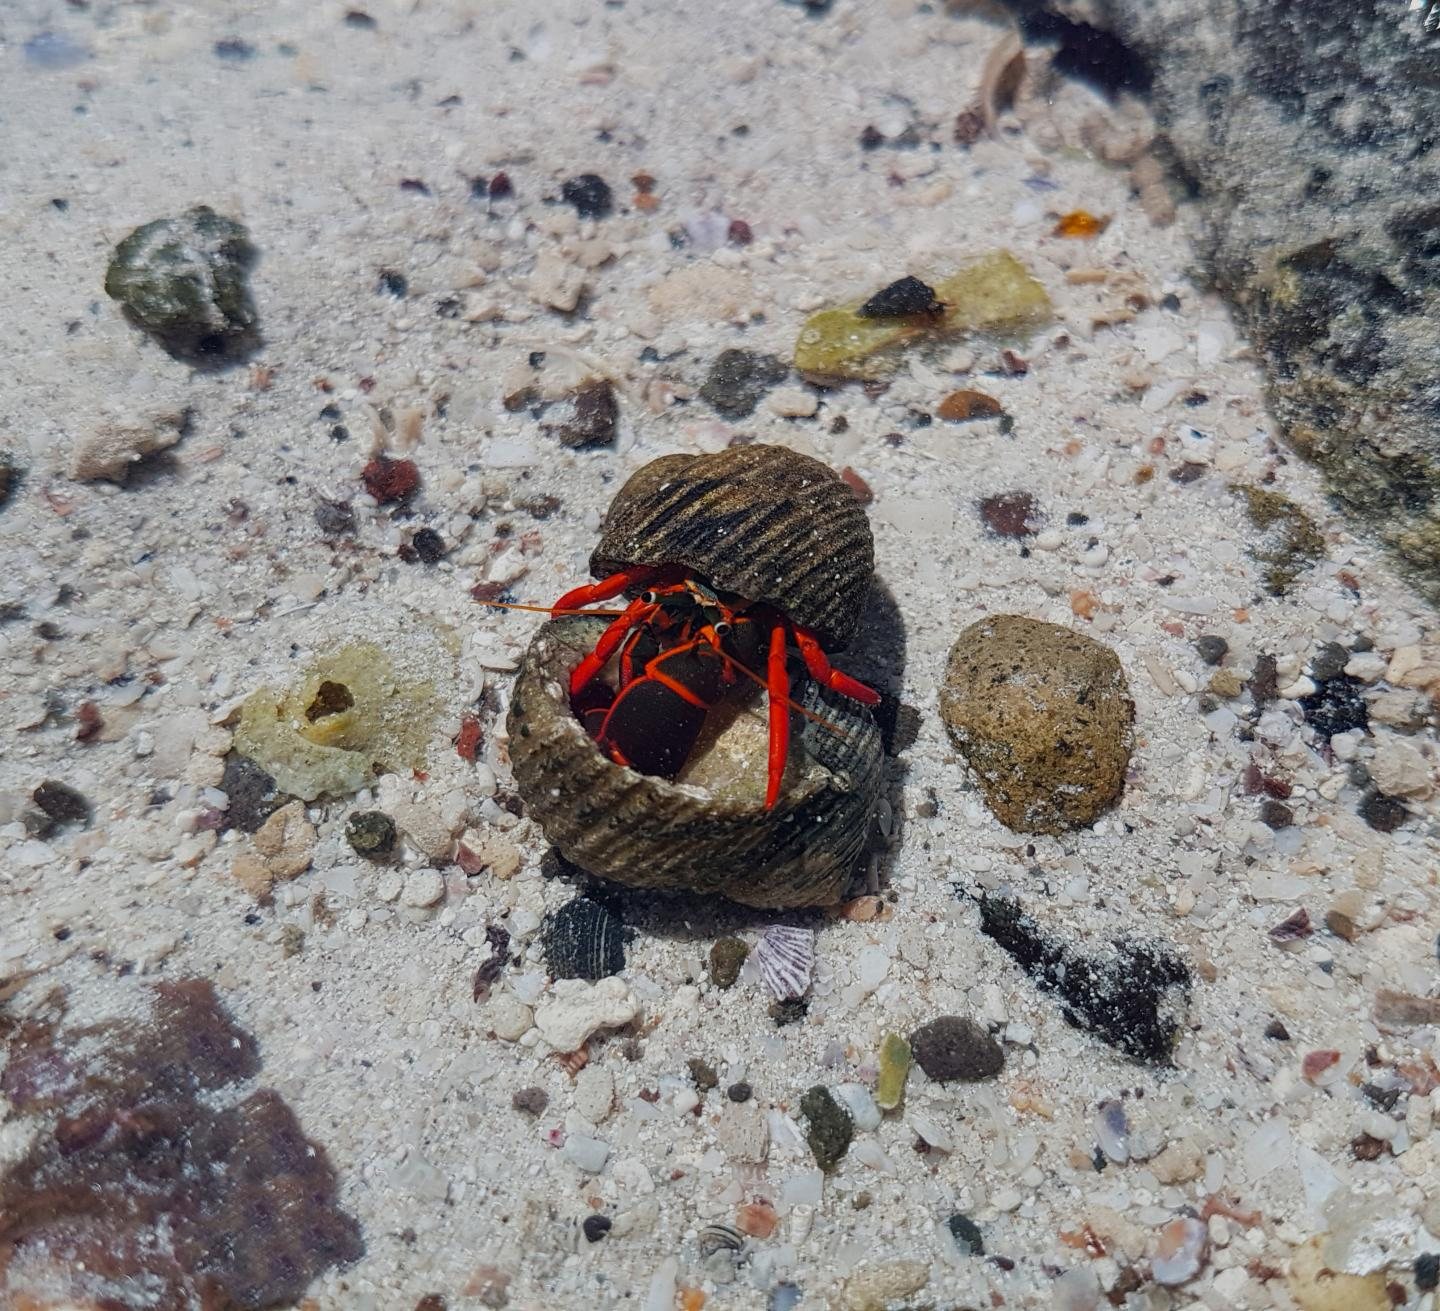 Hermit Crab Exploring the Shell of a Potential Opponent